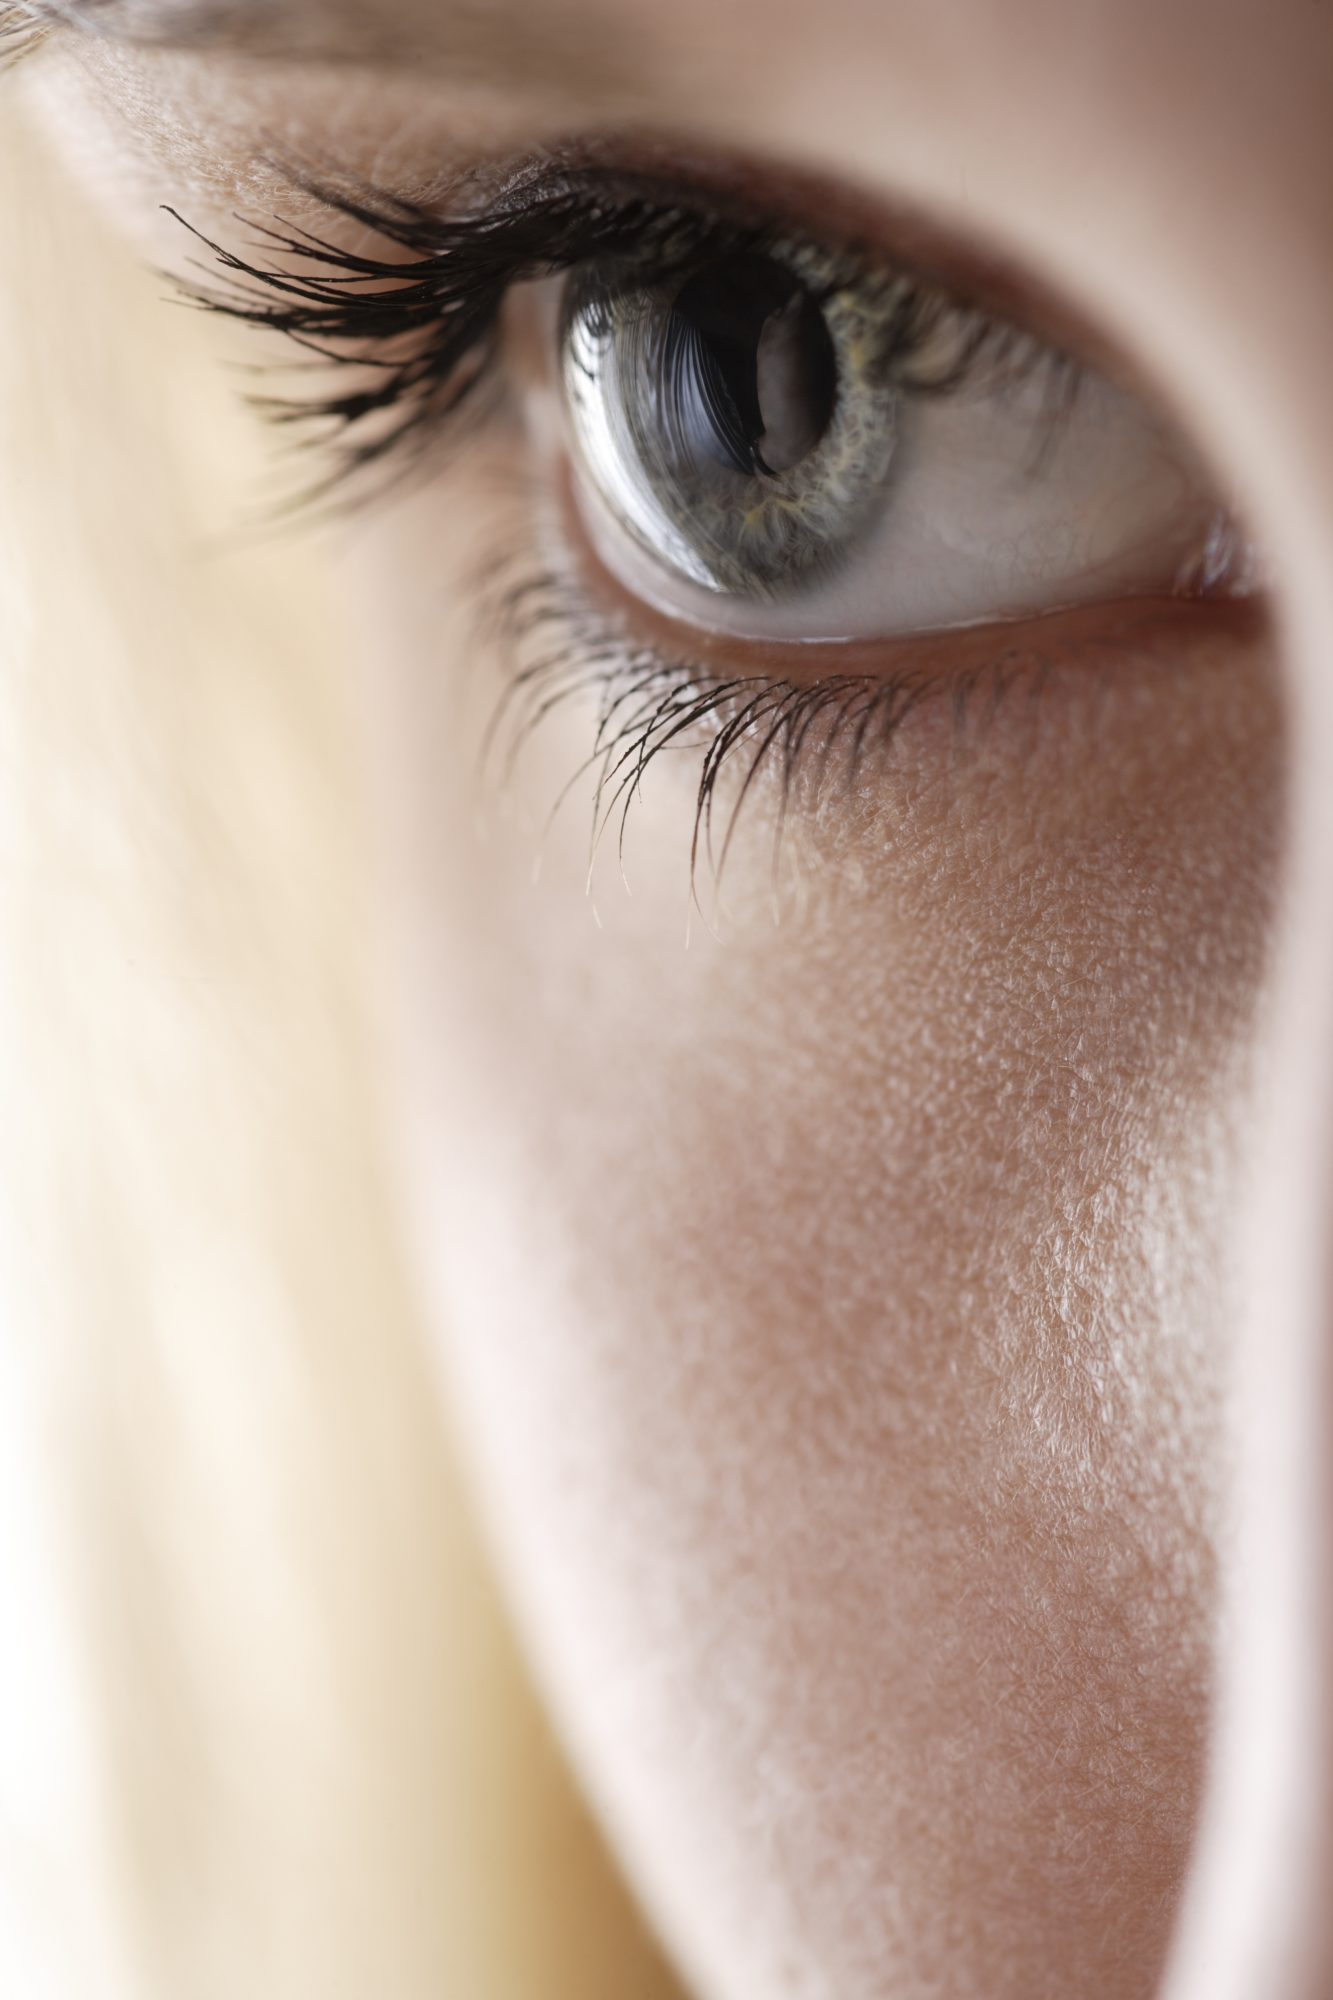 woman's eye close up